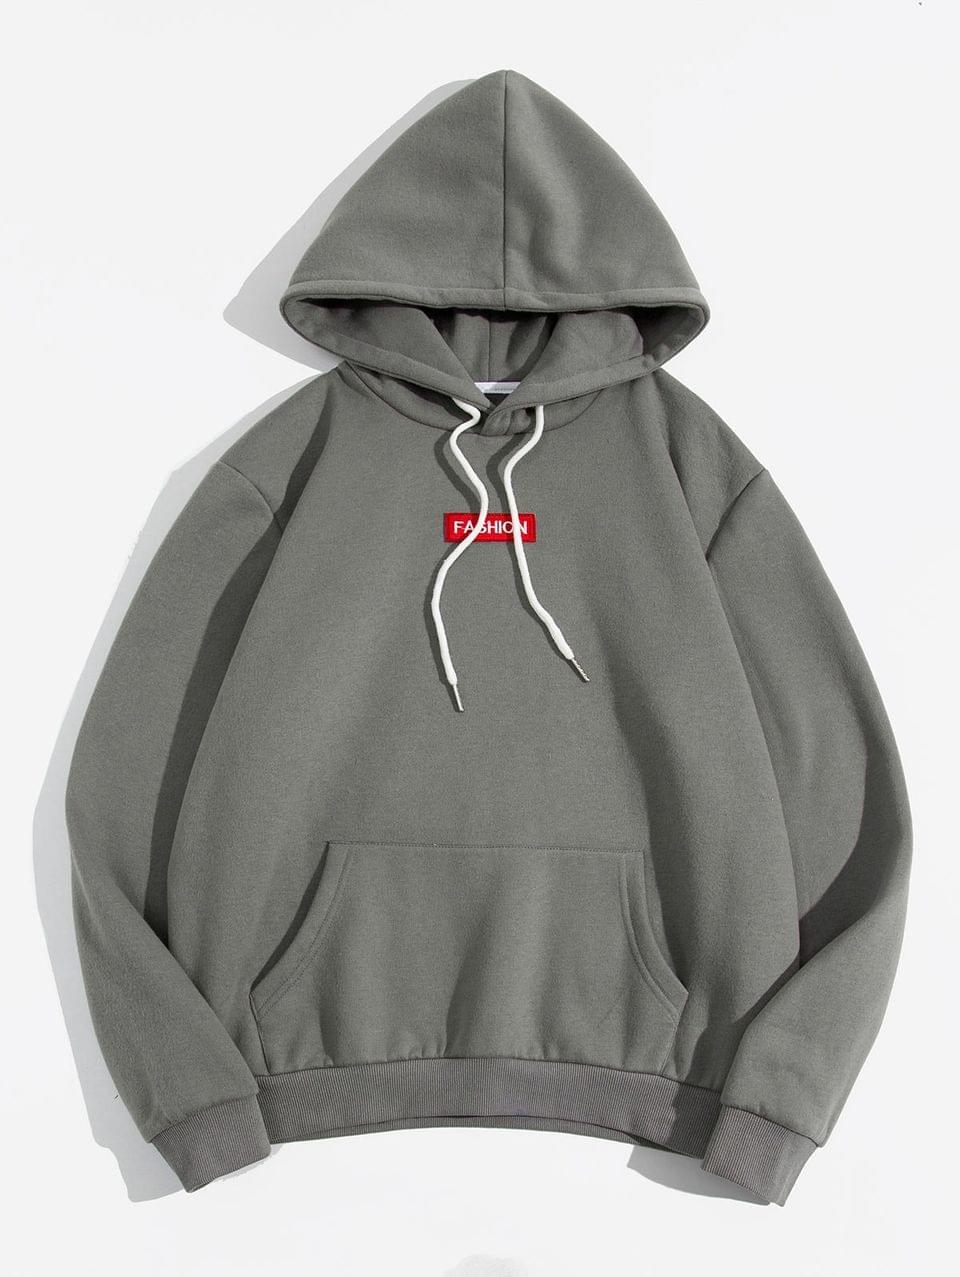 Men's Letter Embroidery Solid Drawstring Fleece Hoodie - Gray 2xl